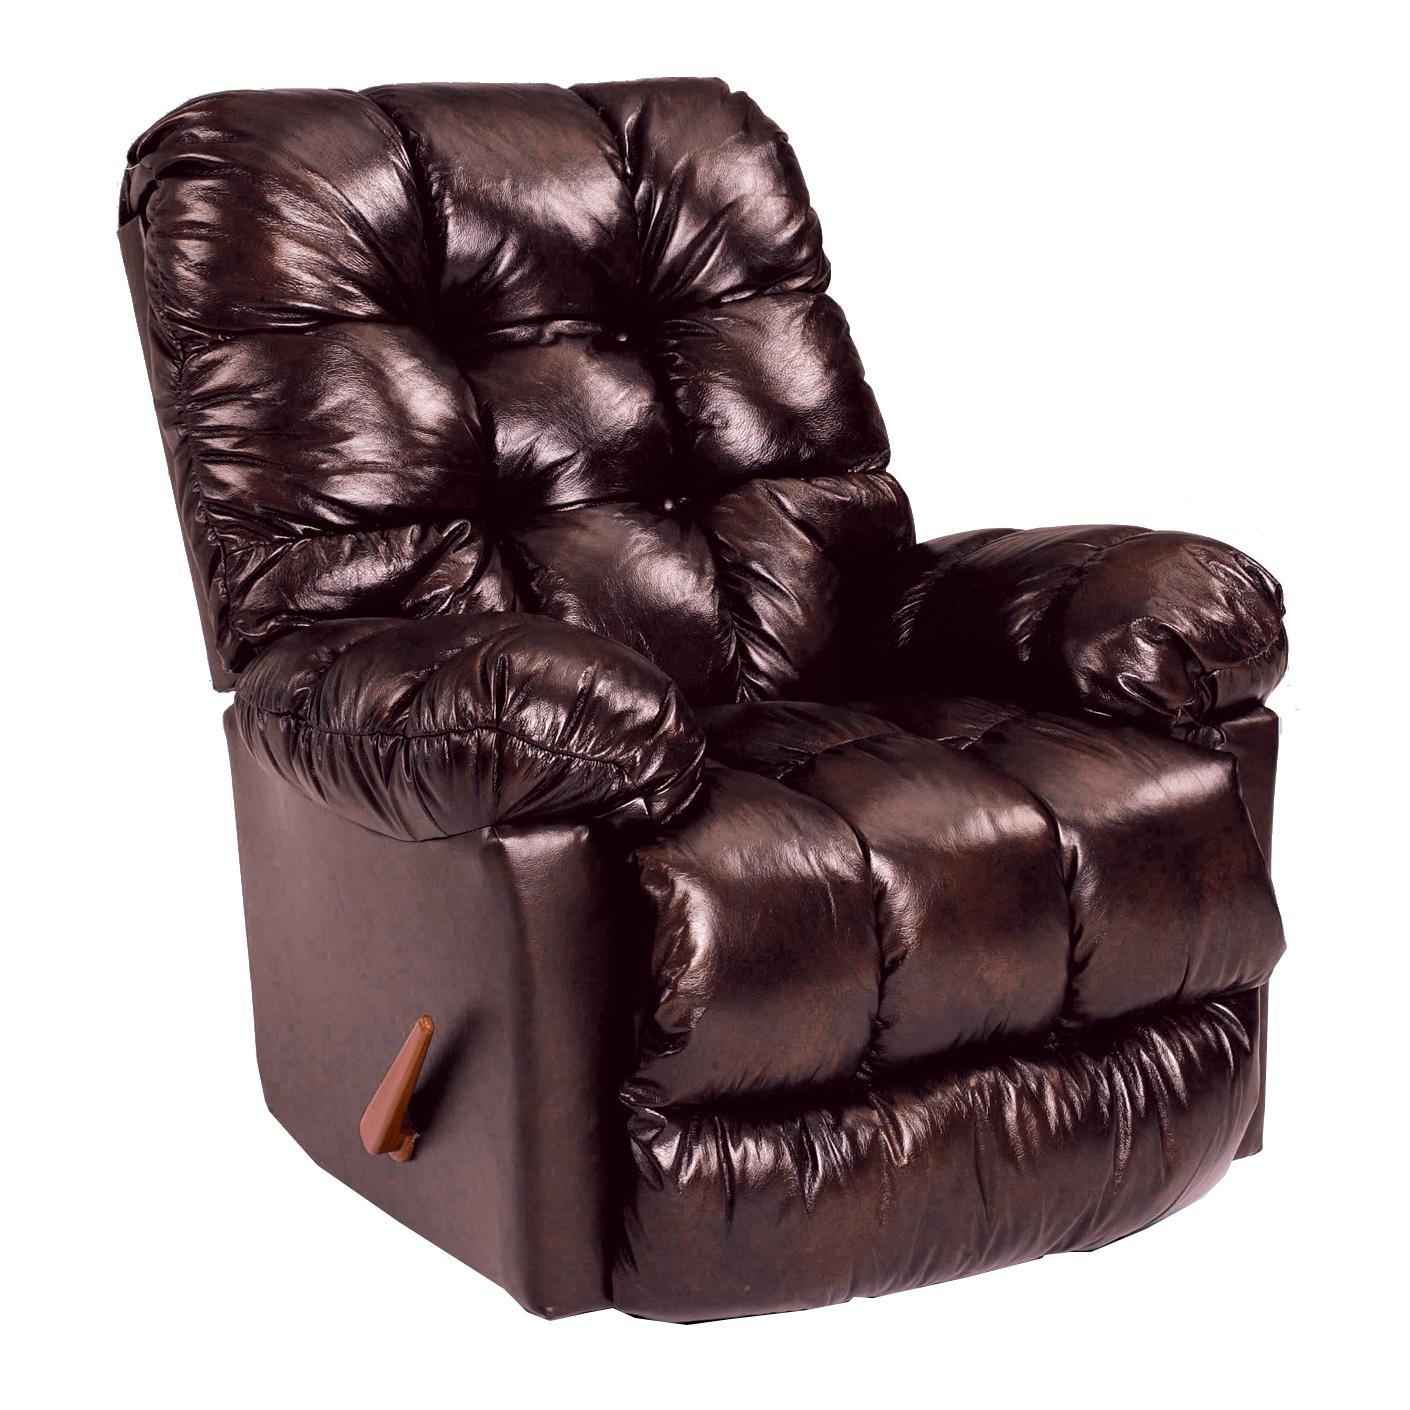 Best Home Furnishings Recliners - Medium Brosmer Power Wallhugger Recliner - Item Number: 9MP84-1LV